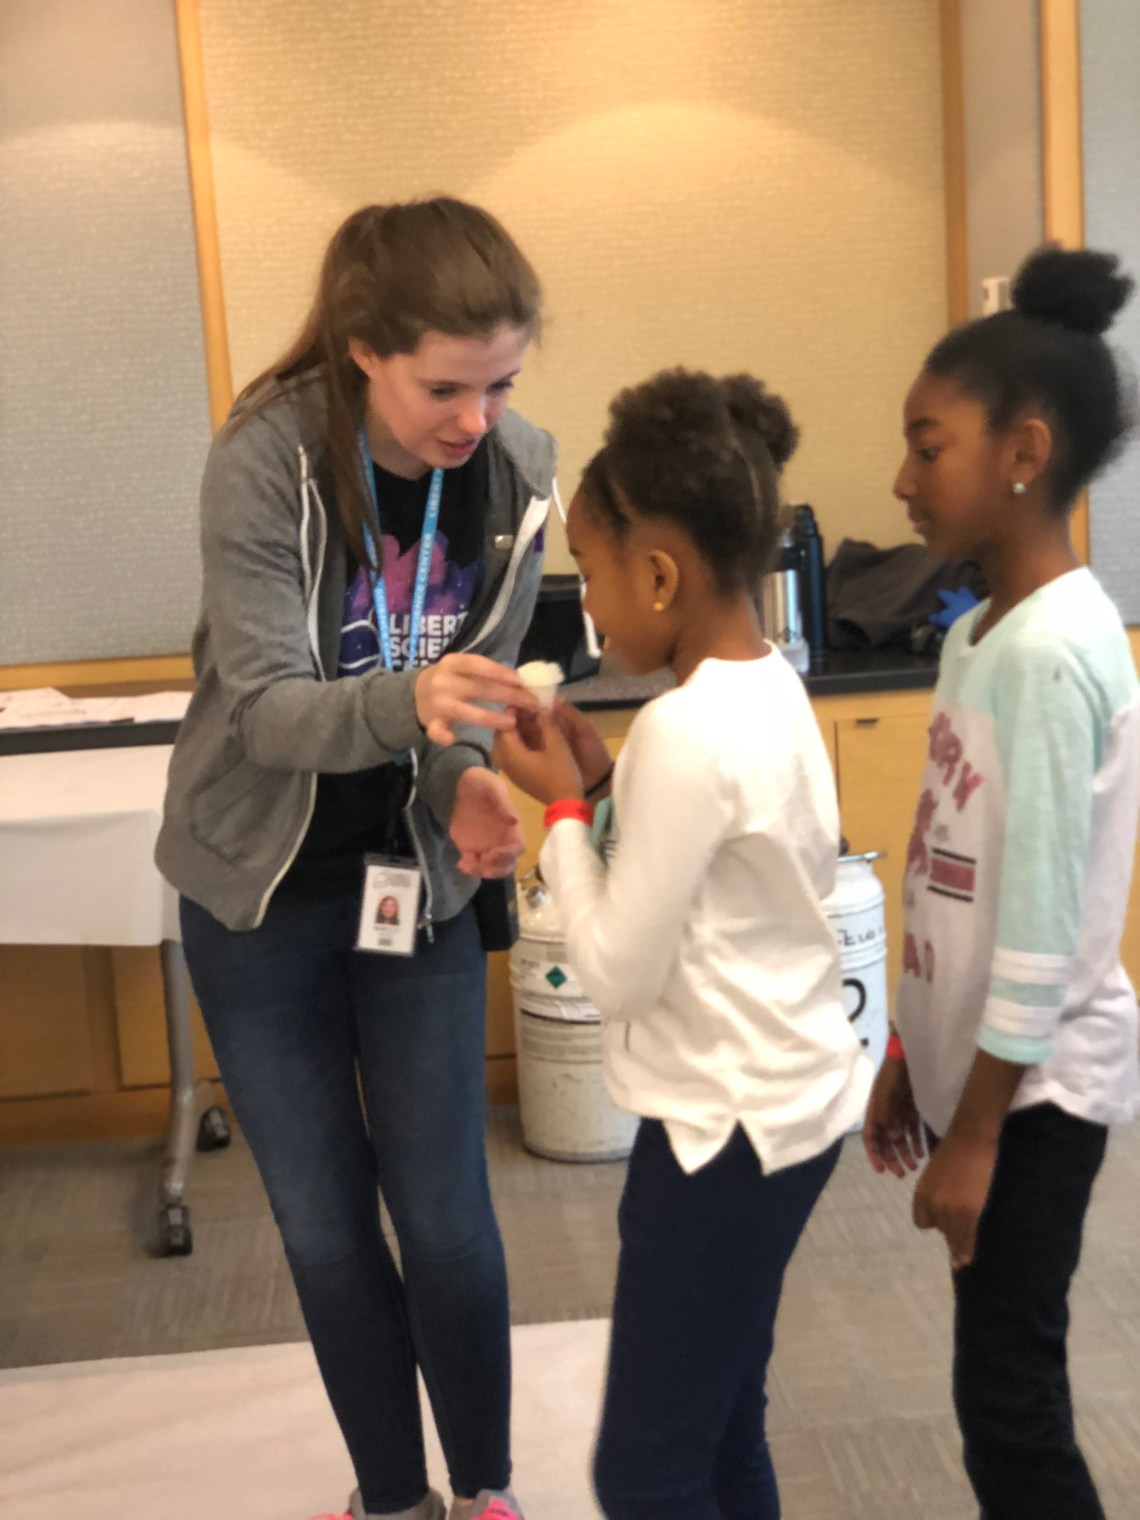 Ice cream making at Liberty Science Center